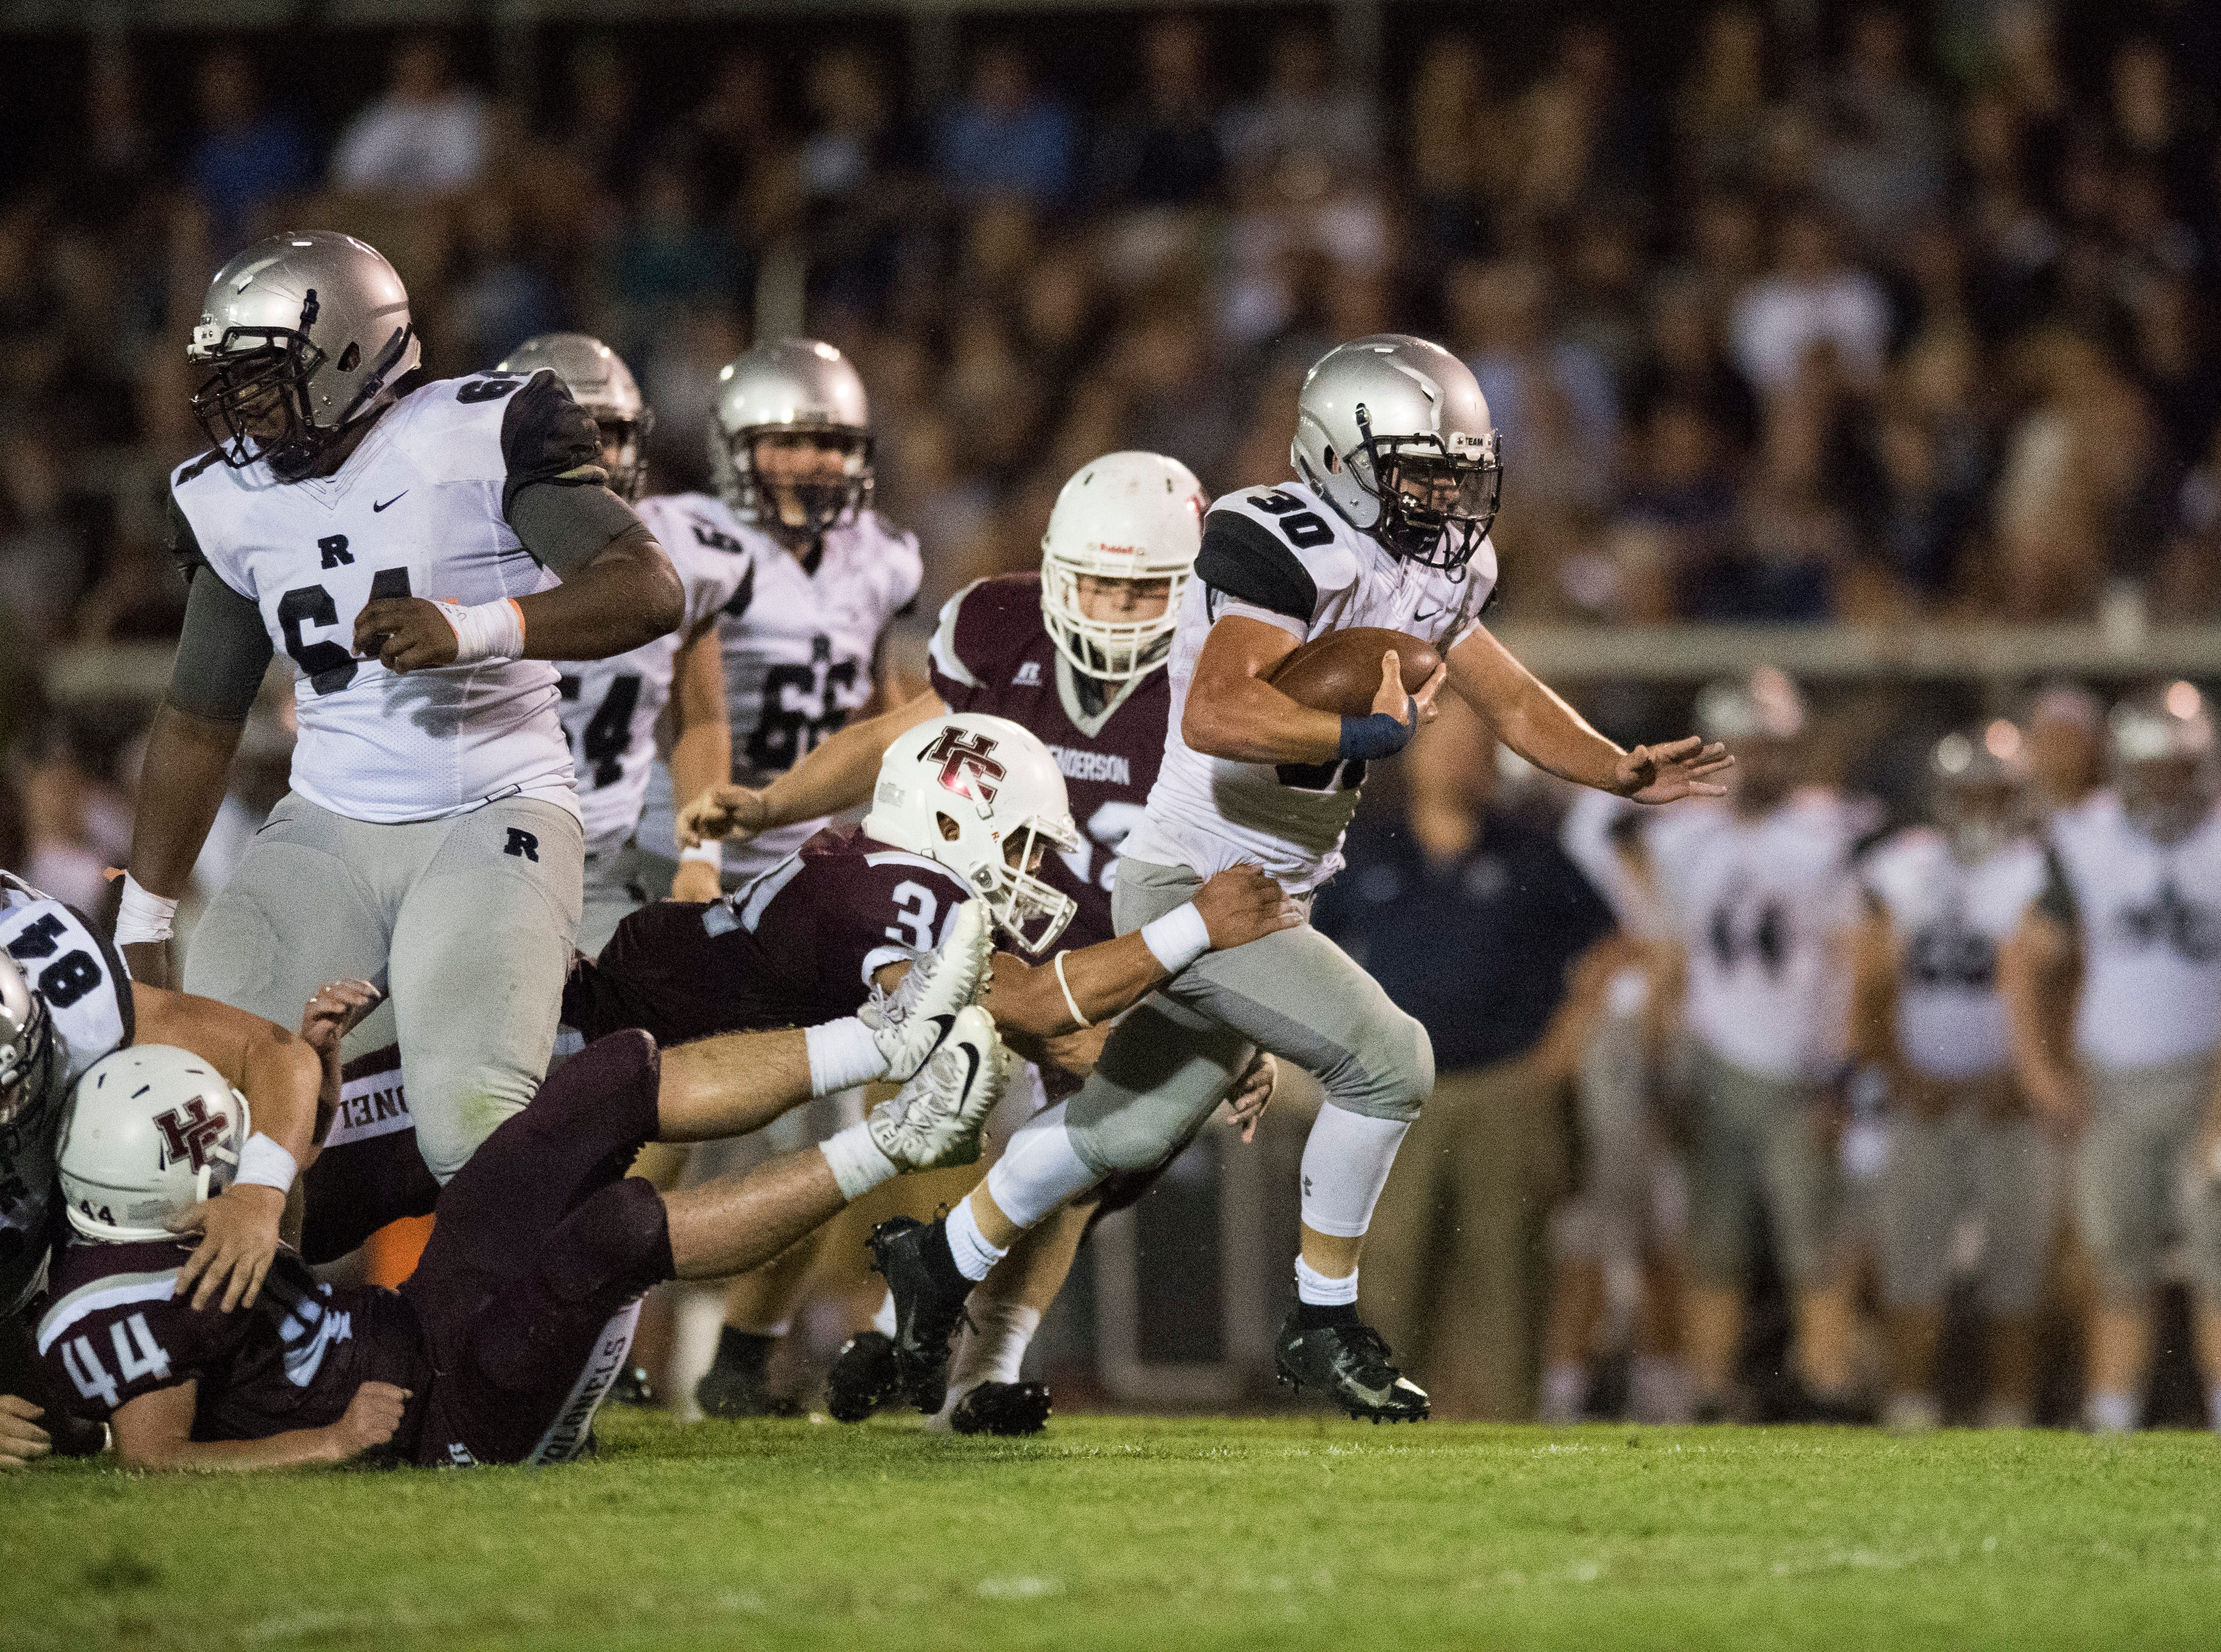 Reitz's Alex Mitchell (30) breaks through the Henderson Colonels defensive line during the Reitz vs Henderson County game at Colonel Stadium Friday, August 17, 2018. The Panthers defeated the Colonels 41-35 in the season opening game.